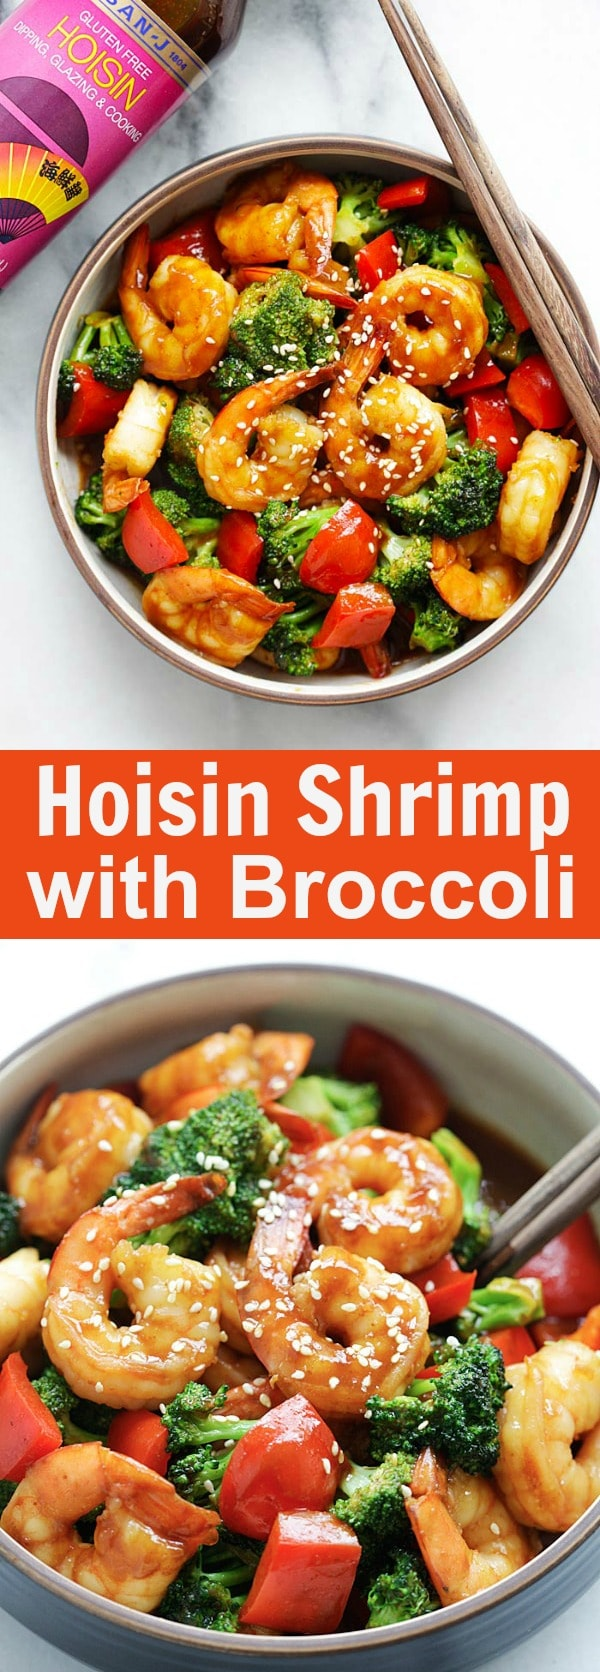 Hoisin Shrimp with Broccoli – Juicy shrimp stir-fry with San-J Hoisin Sauce and healthy broccoli. The easiest dinner for the entire family | rasamalaysia.com